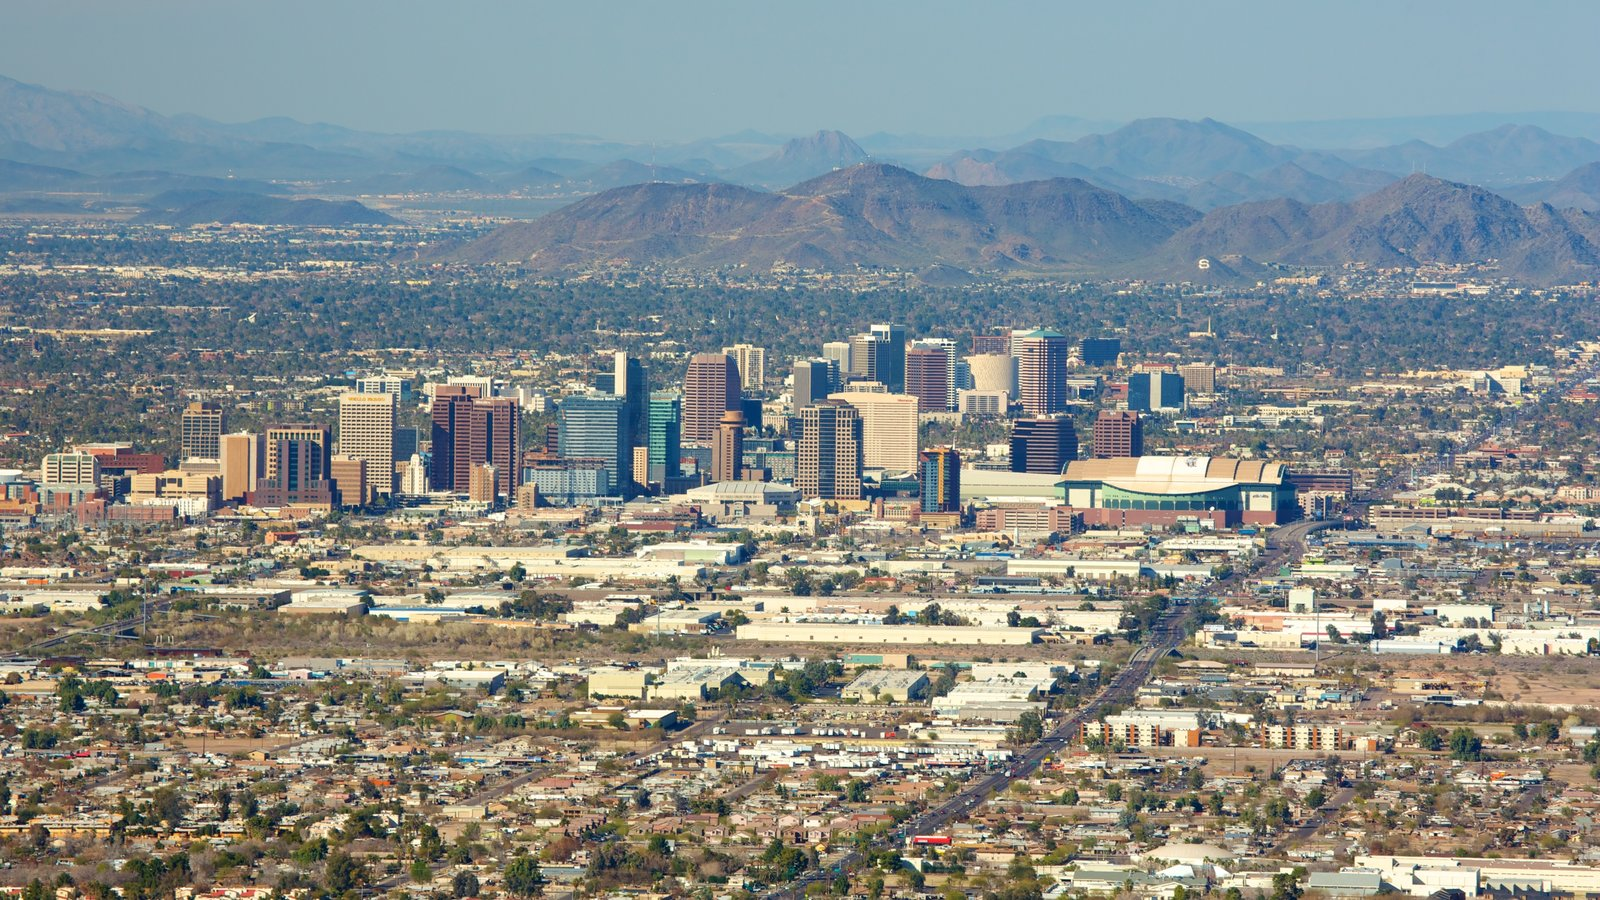 Phoenix featuring a city, landscape views and mountains